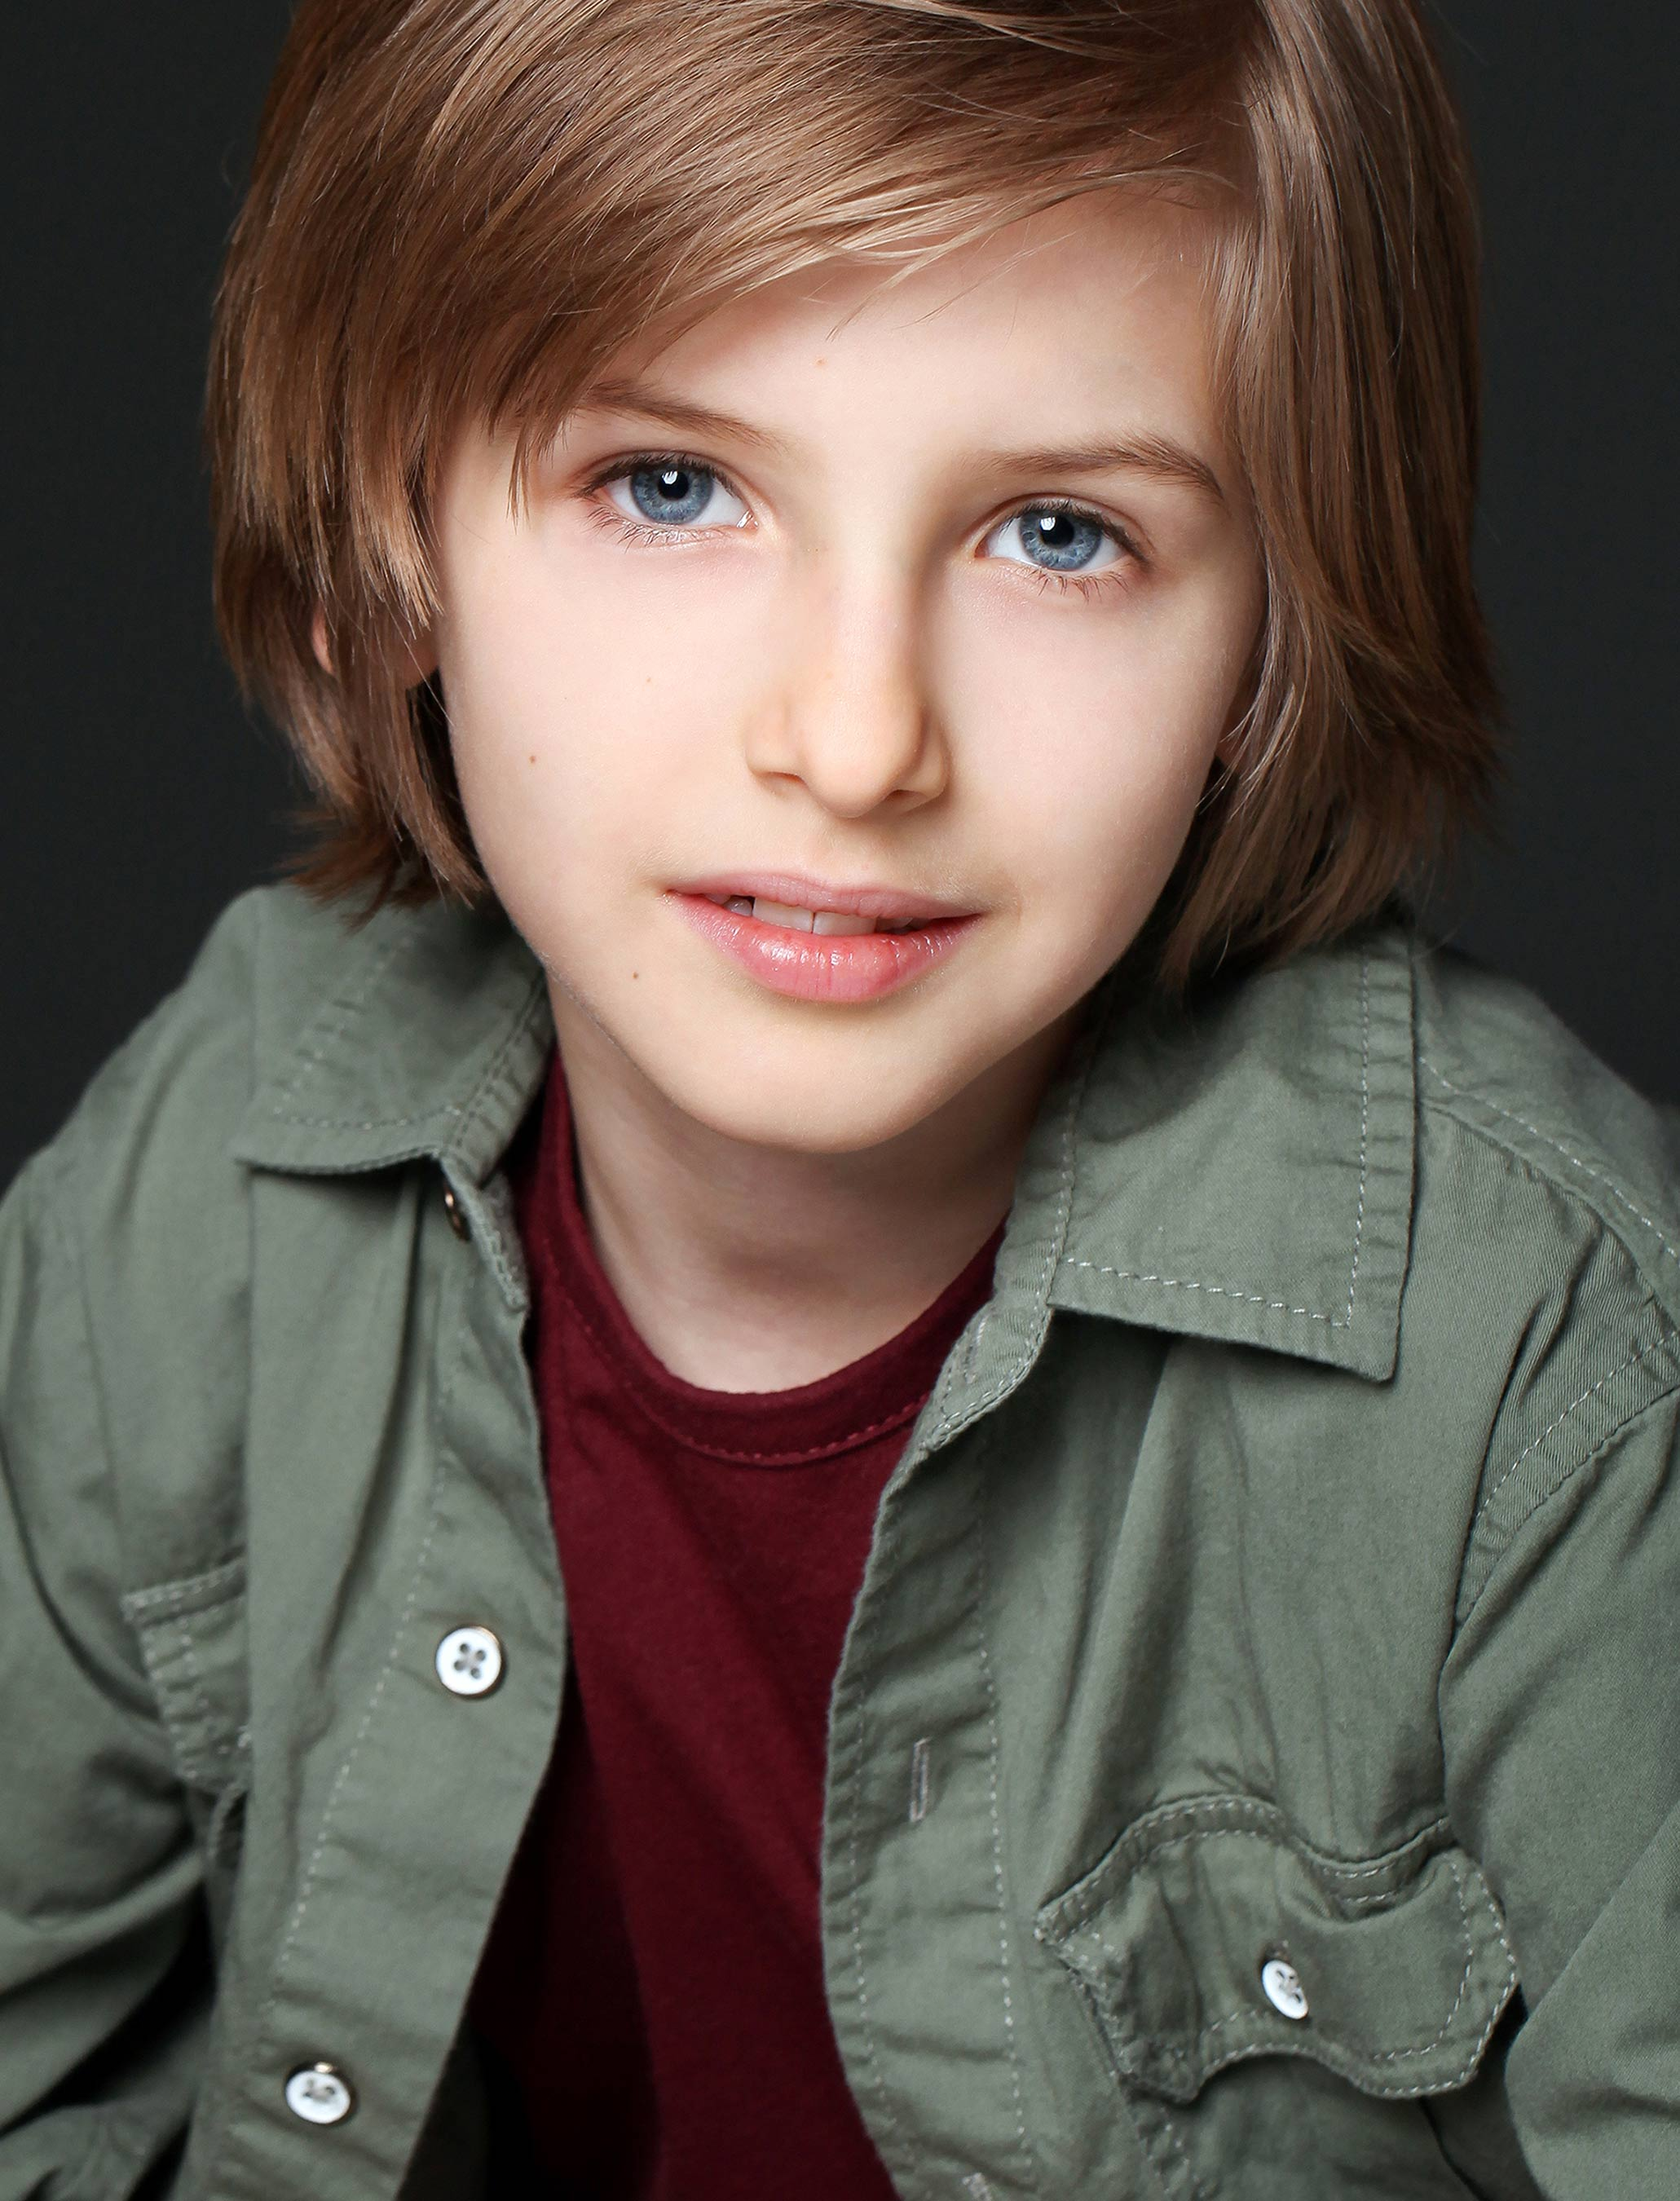 headshots-london-toronto-ontario-child-actor-movies-la-nyc-detroit-fbk